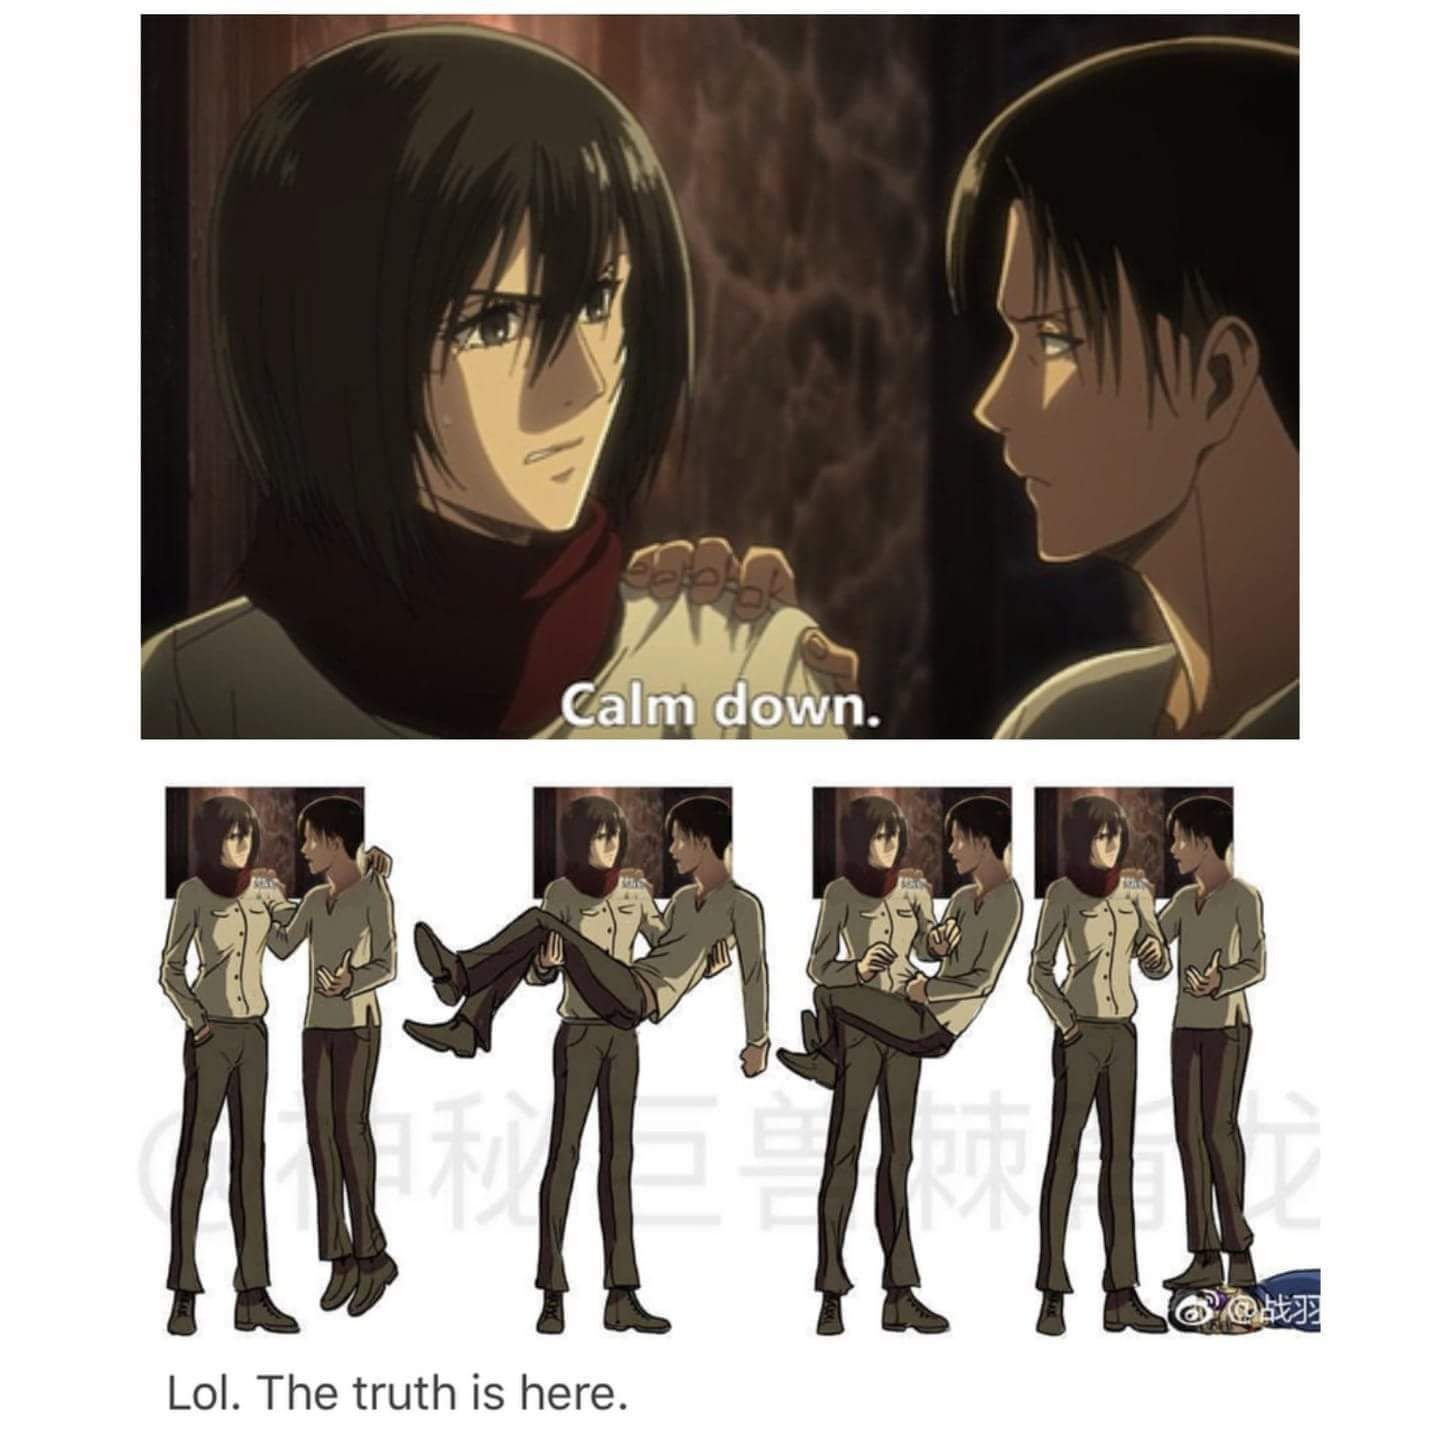 Found on reddit in 2020 with images attack on titan